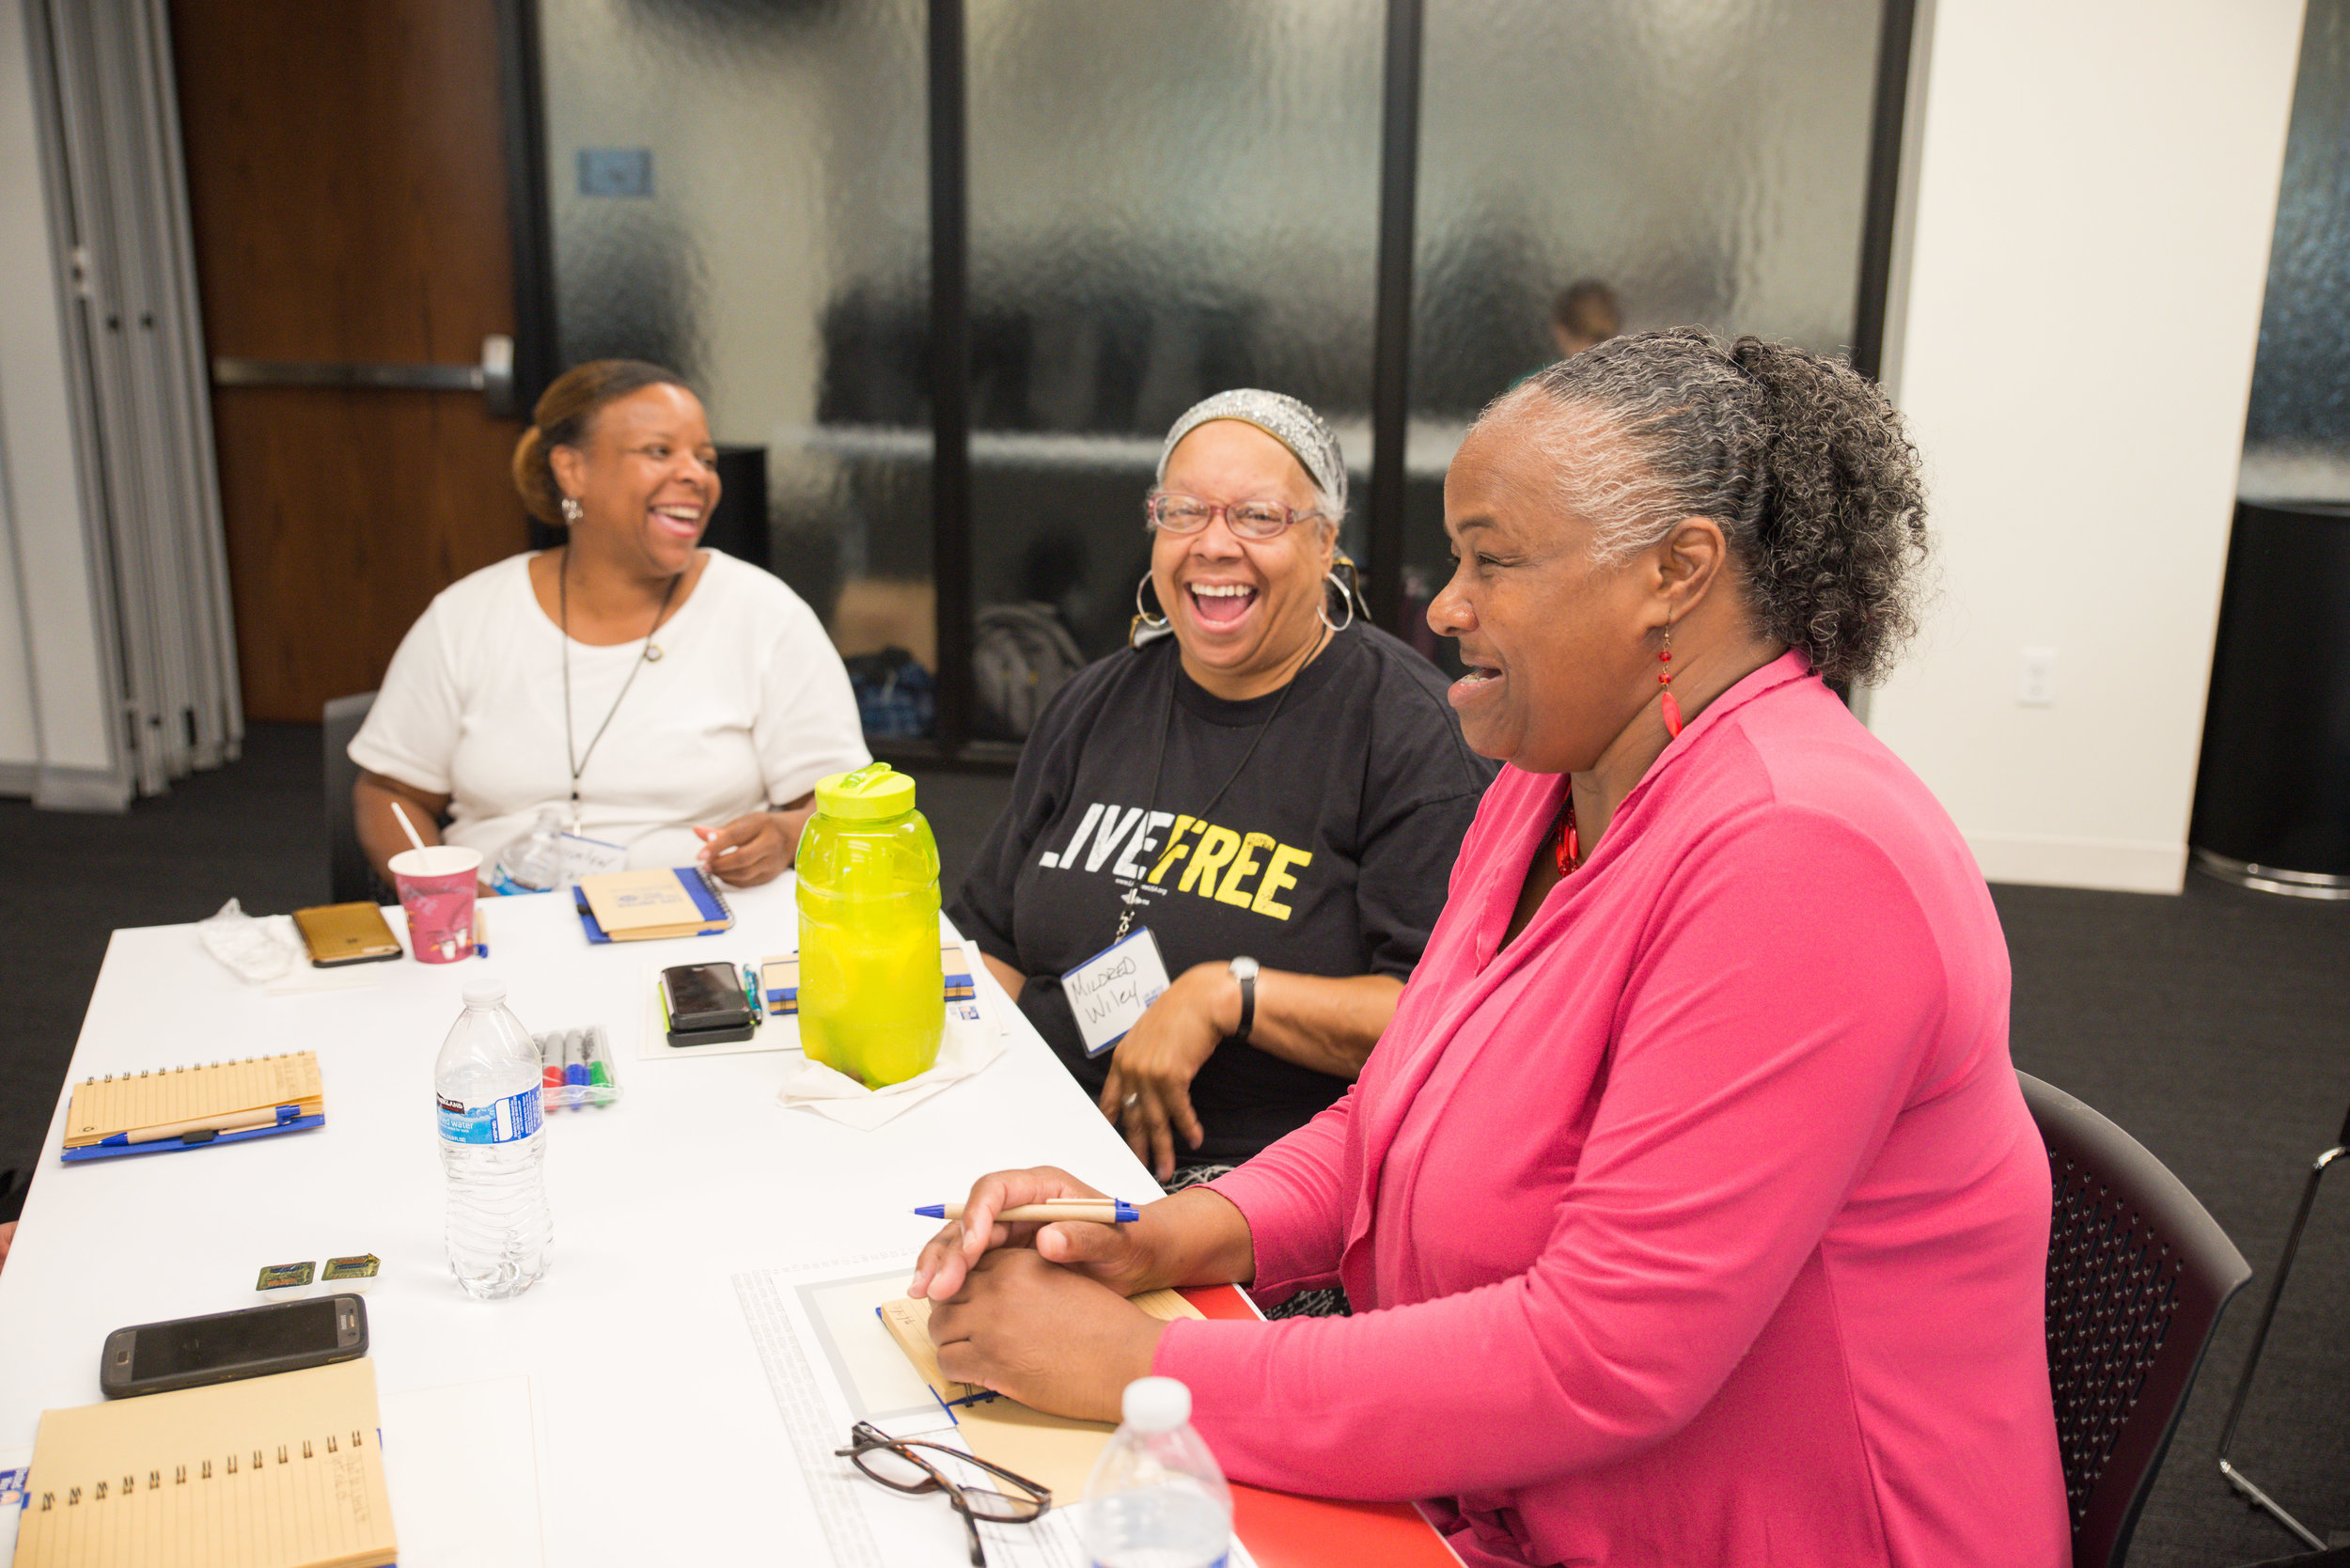 3 women share a laugh during group activity